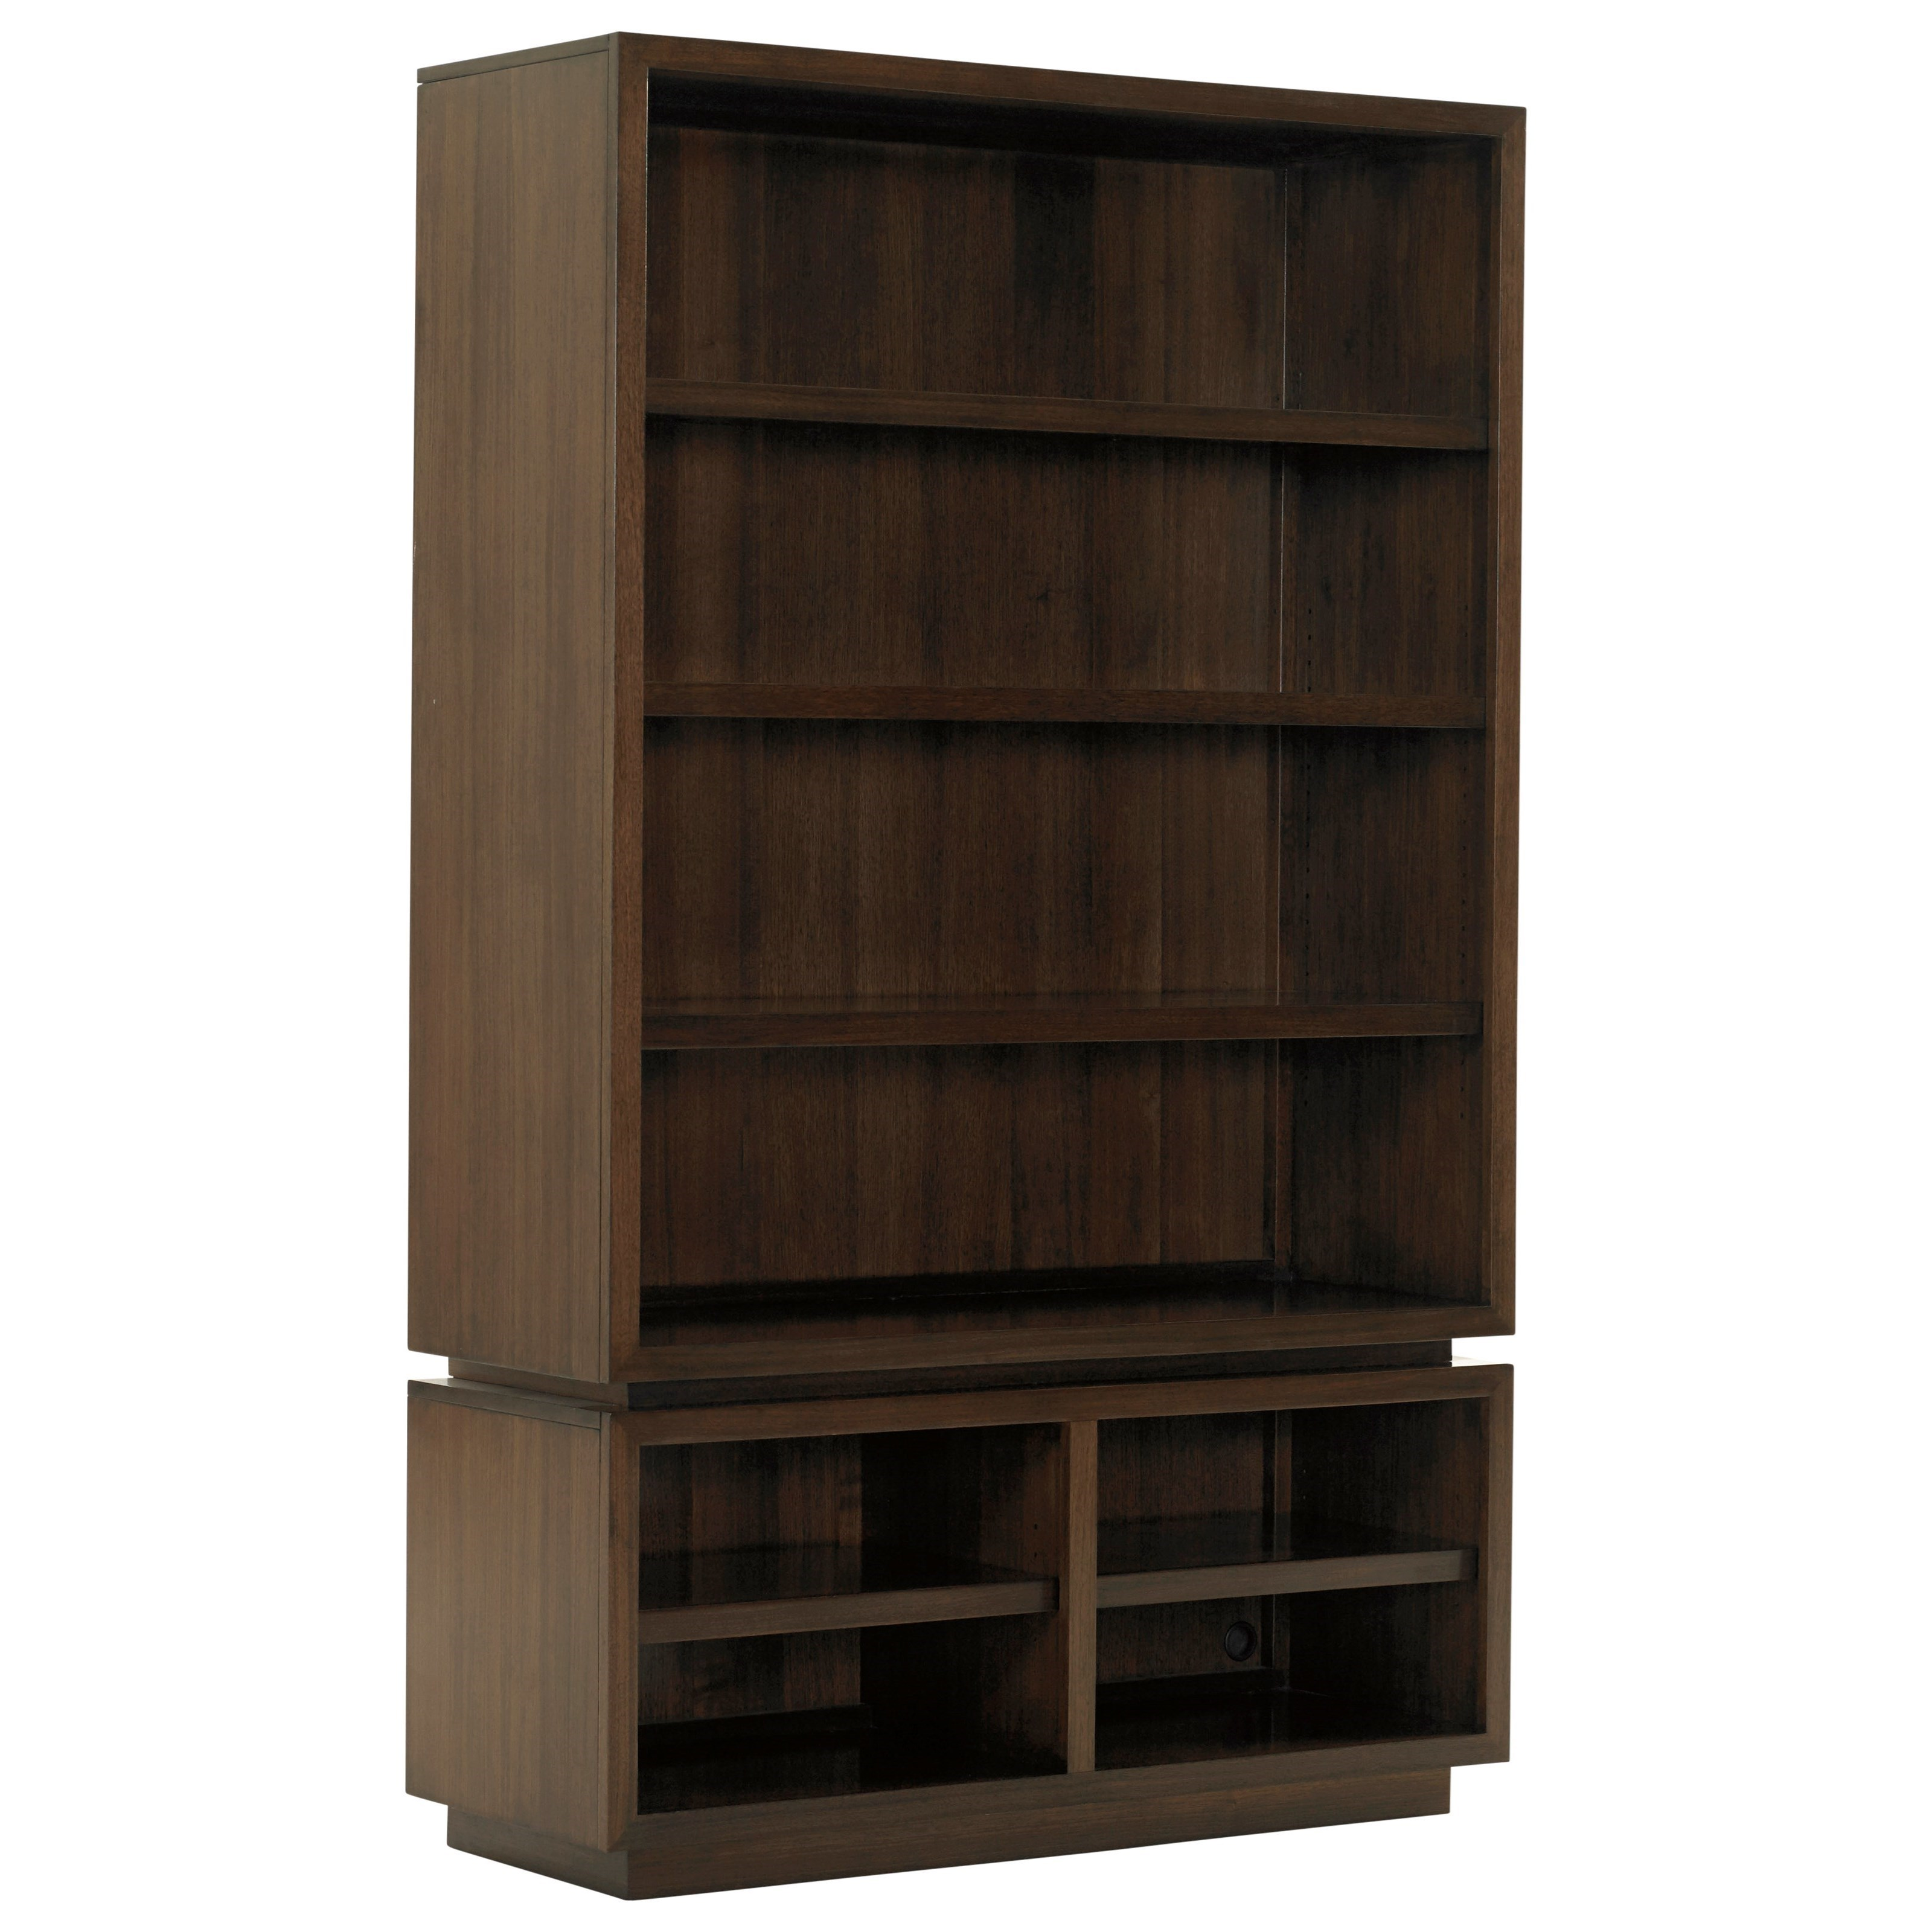 MacArthur Park Thurston Bunching Bookcase by Lexington at Johnny Janosik